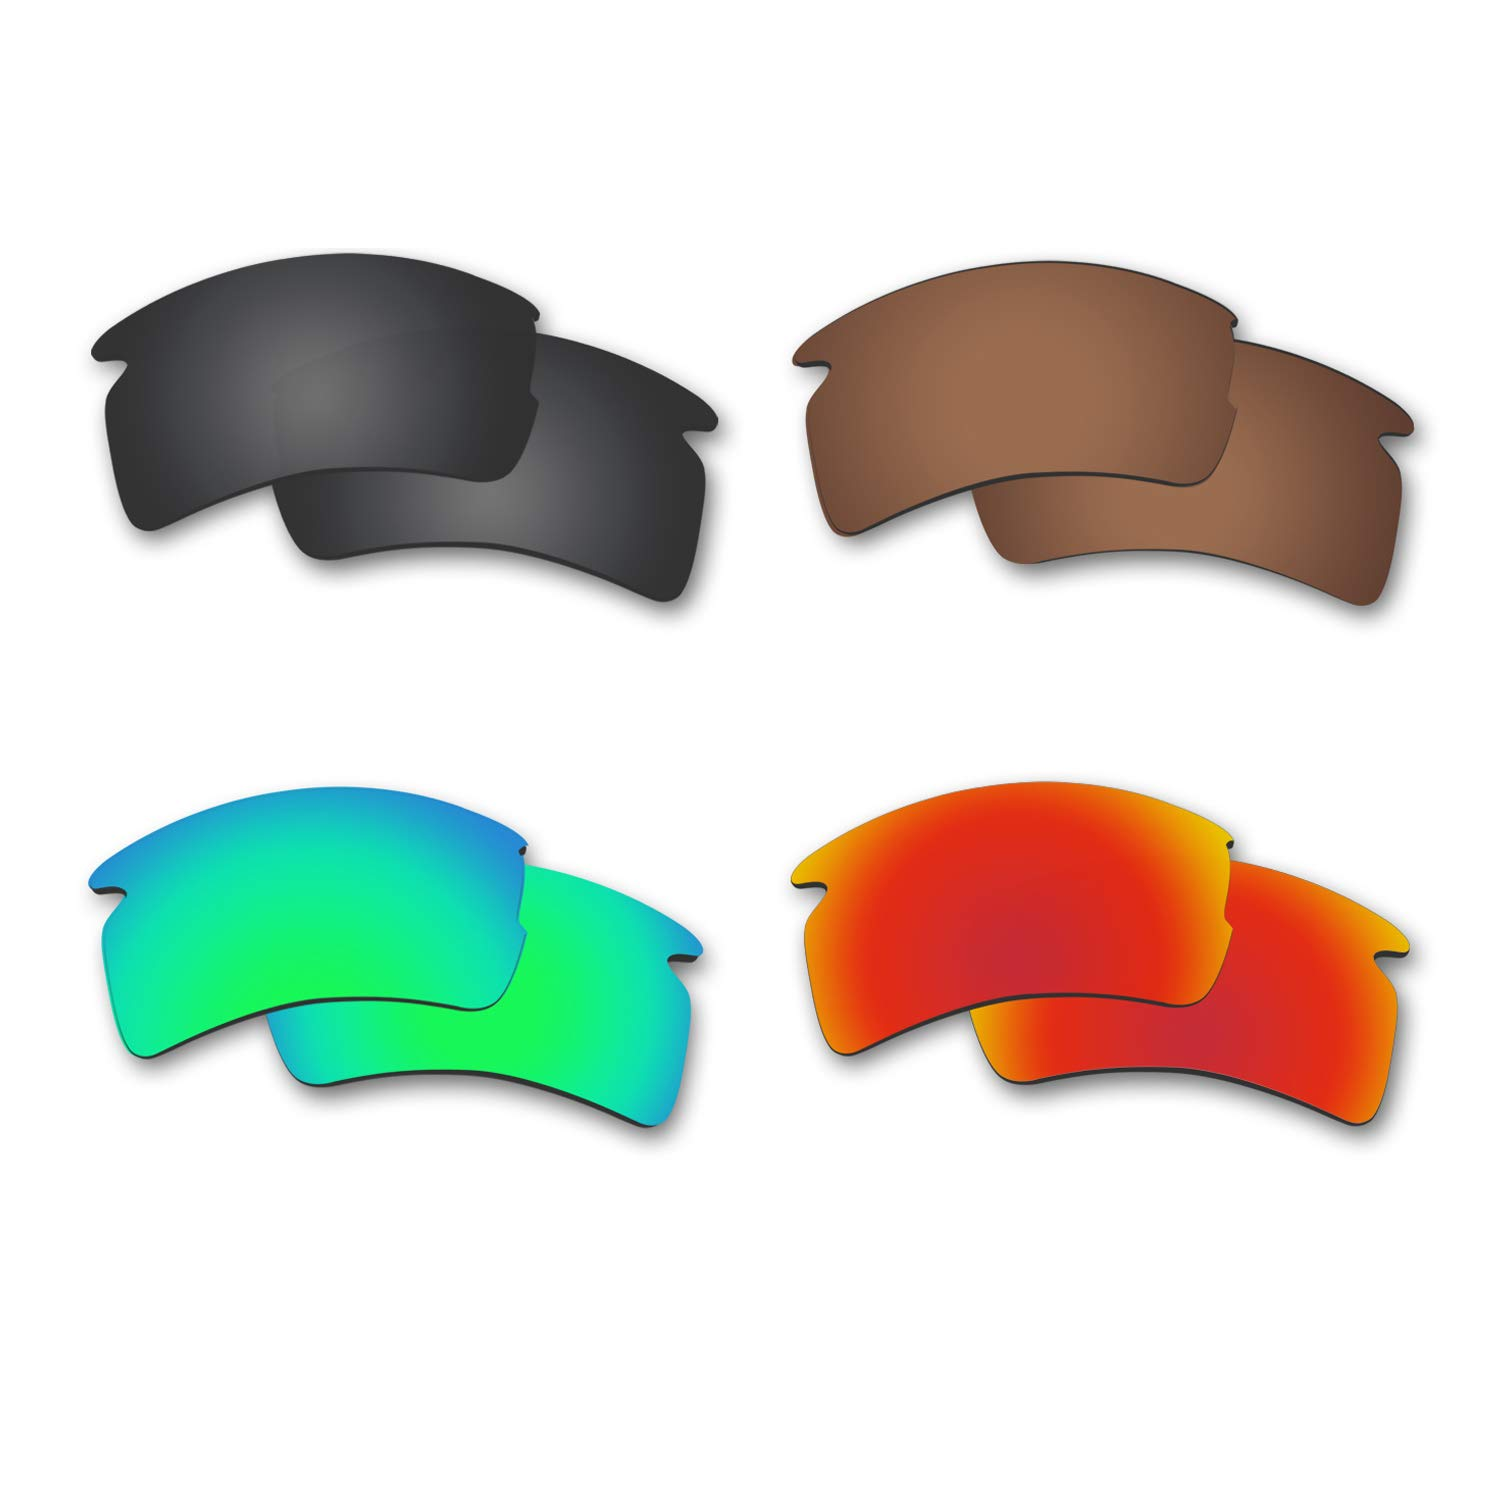 Fiskr Anti-saltwater Polarized Replacement Lenses for Oakley Flak 2.0 XL Sunglasses 4 Pairs by Fiskr